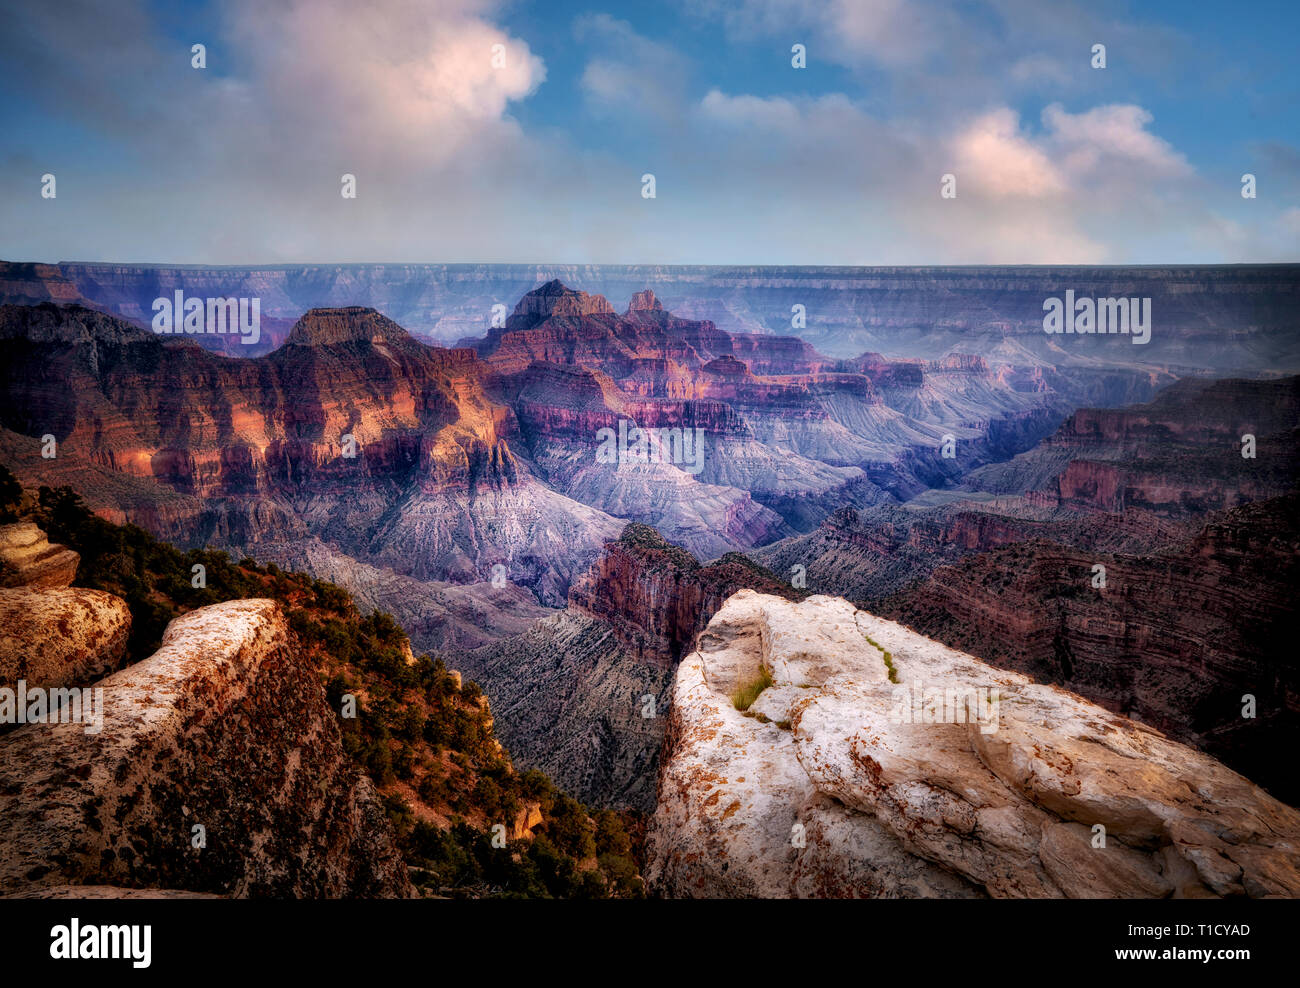 View of Grand Canyon from Bright Angel Point. North Rim of Grand Canyon National Park, Arizona - Stock Image